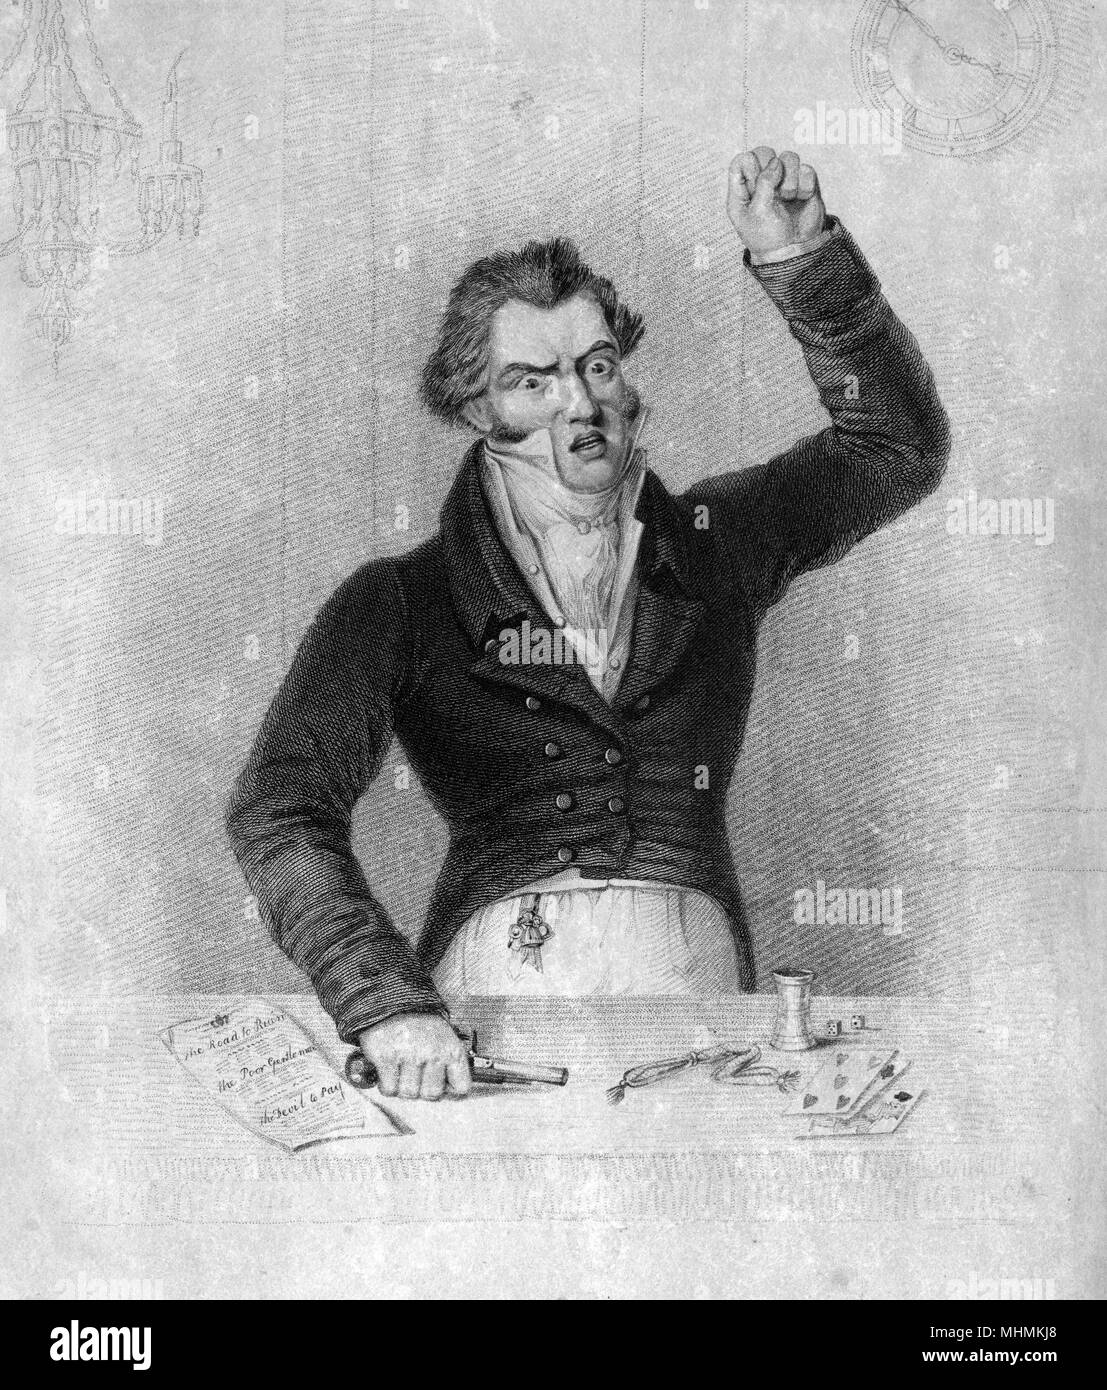 'He loses all... till madness seizes on his fev'rish brain' A gentleman gambler, deep in debt, raises his fist in impotent rage.      Date: circa 1810 - Stock Image